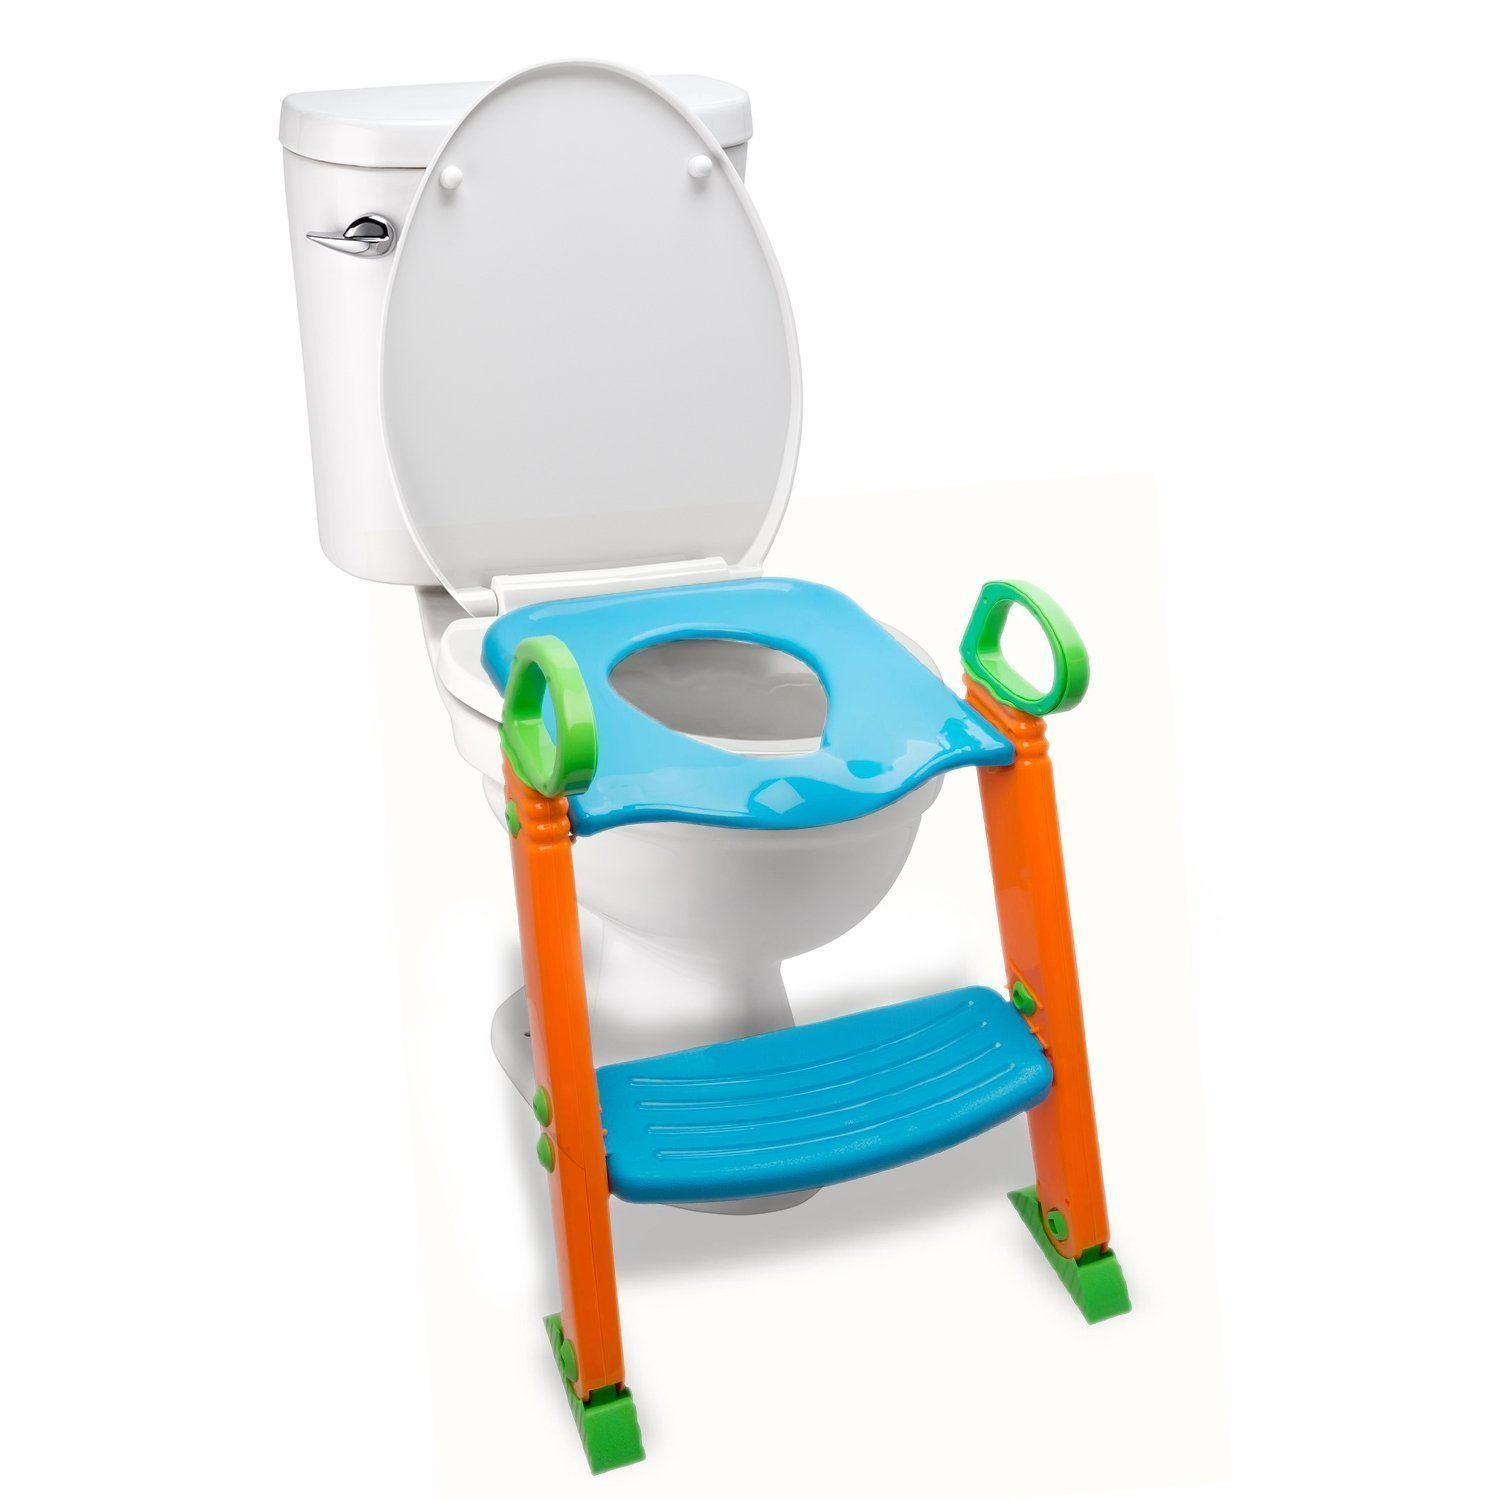 PAZ Generix Potty Toilet Seat with Step Stool ladder (3 in 1) Trainer for Kids Toddlers W/ Handles. Sturdy Comfortable Safe Built In Non-Slip Steps W/ Anti-Slip Pads. Excellent Potty Seat Step Boys Girls Baby